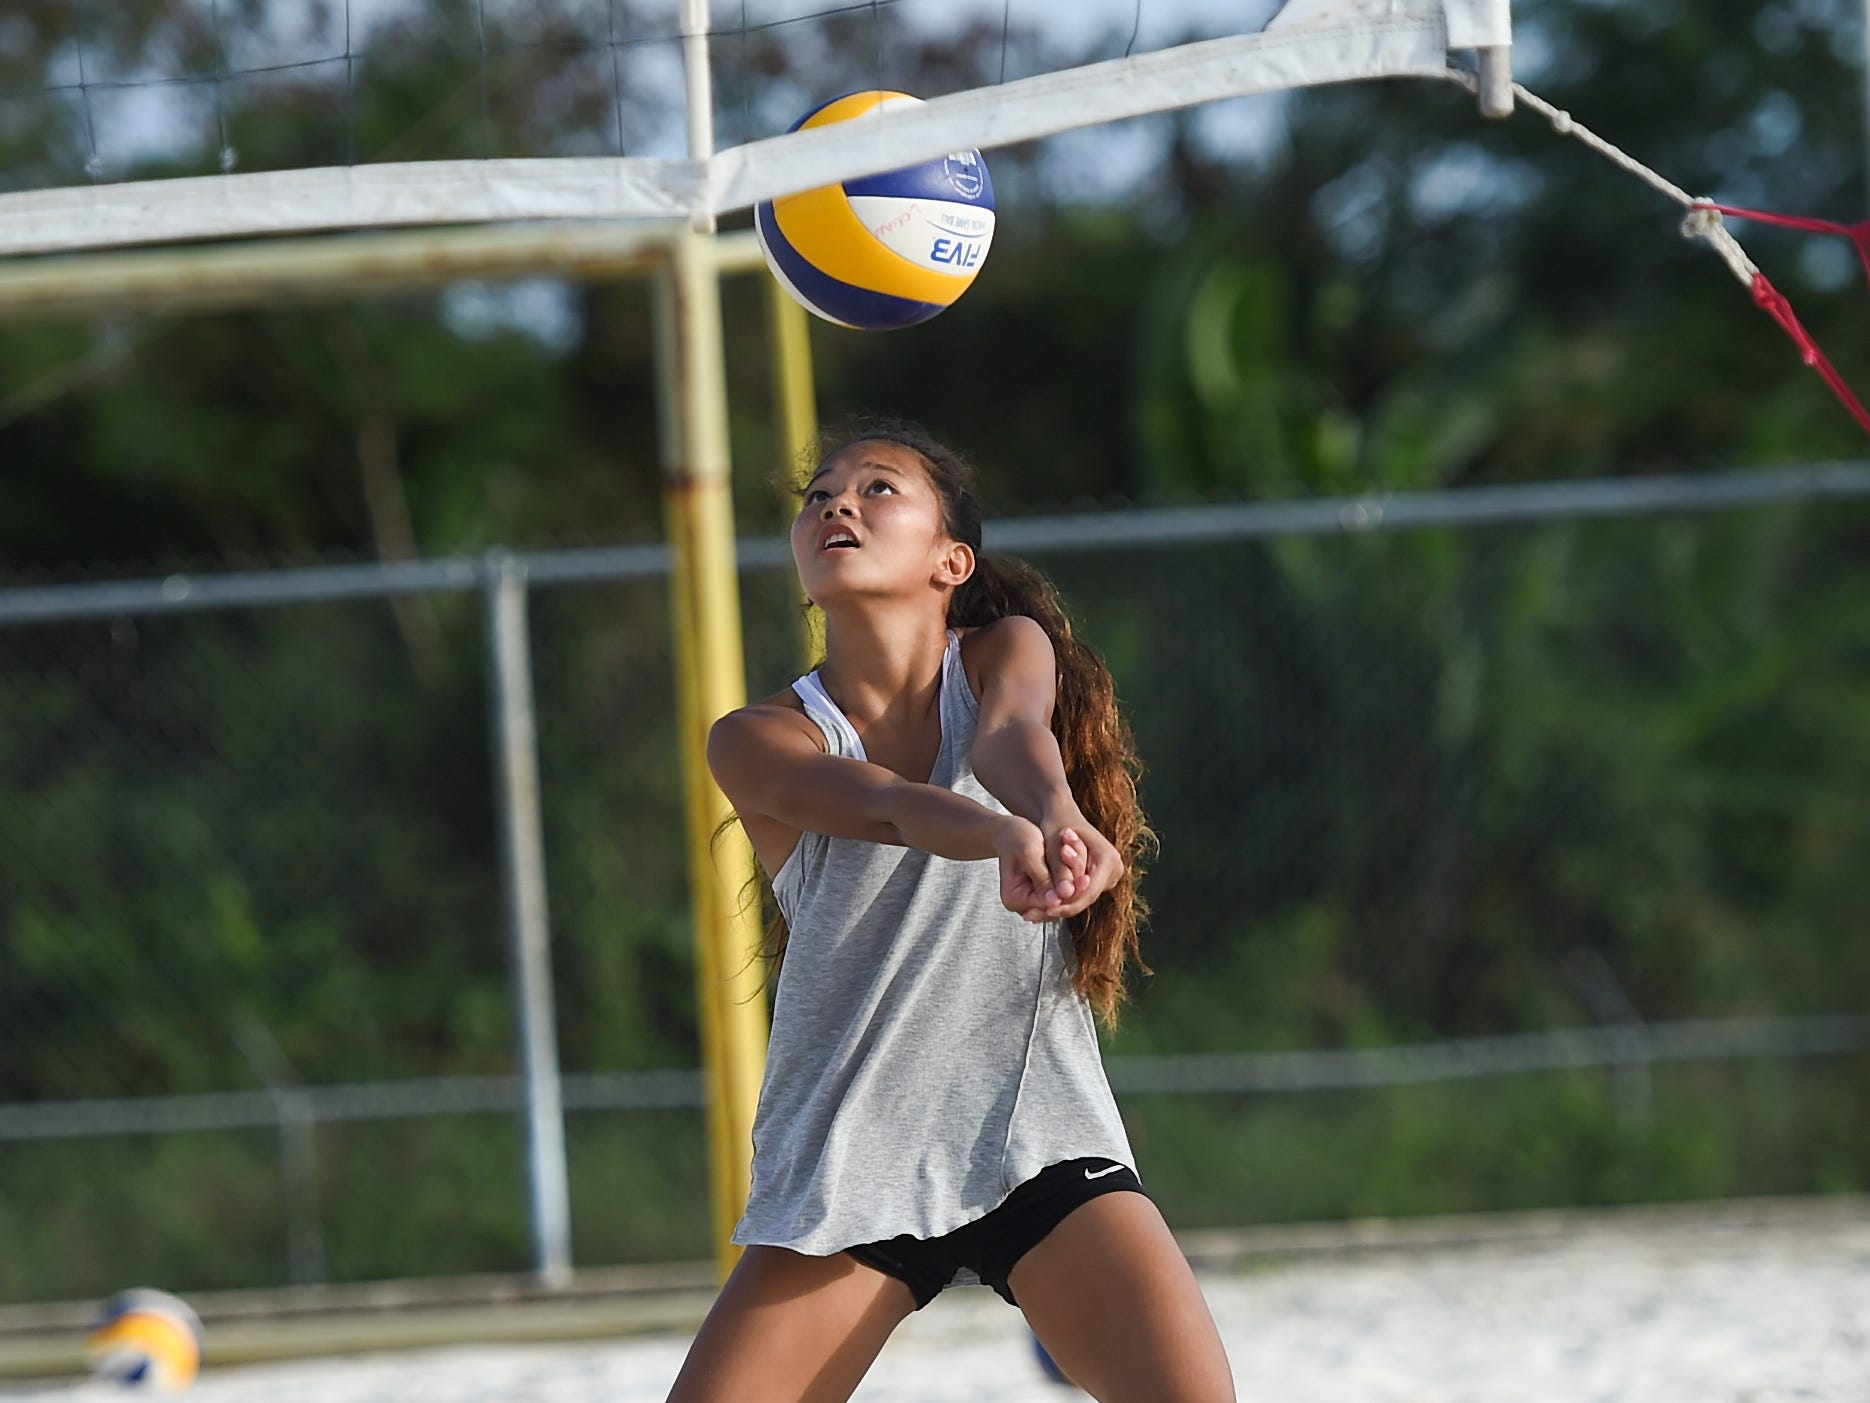 St. John's White's Yasmeen Lopez bumps during the IIAAG Beach Volleyball championship game at the Guam Football Association National Training Center in Dededo, March 12, 2019.